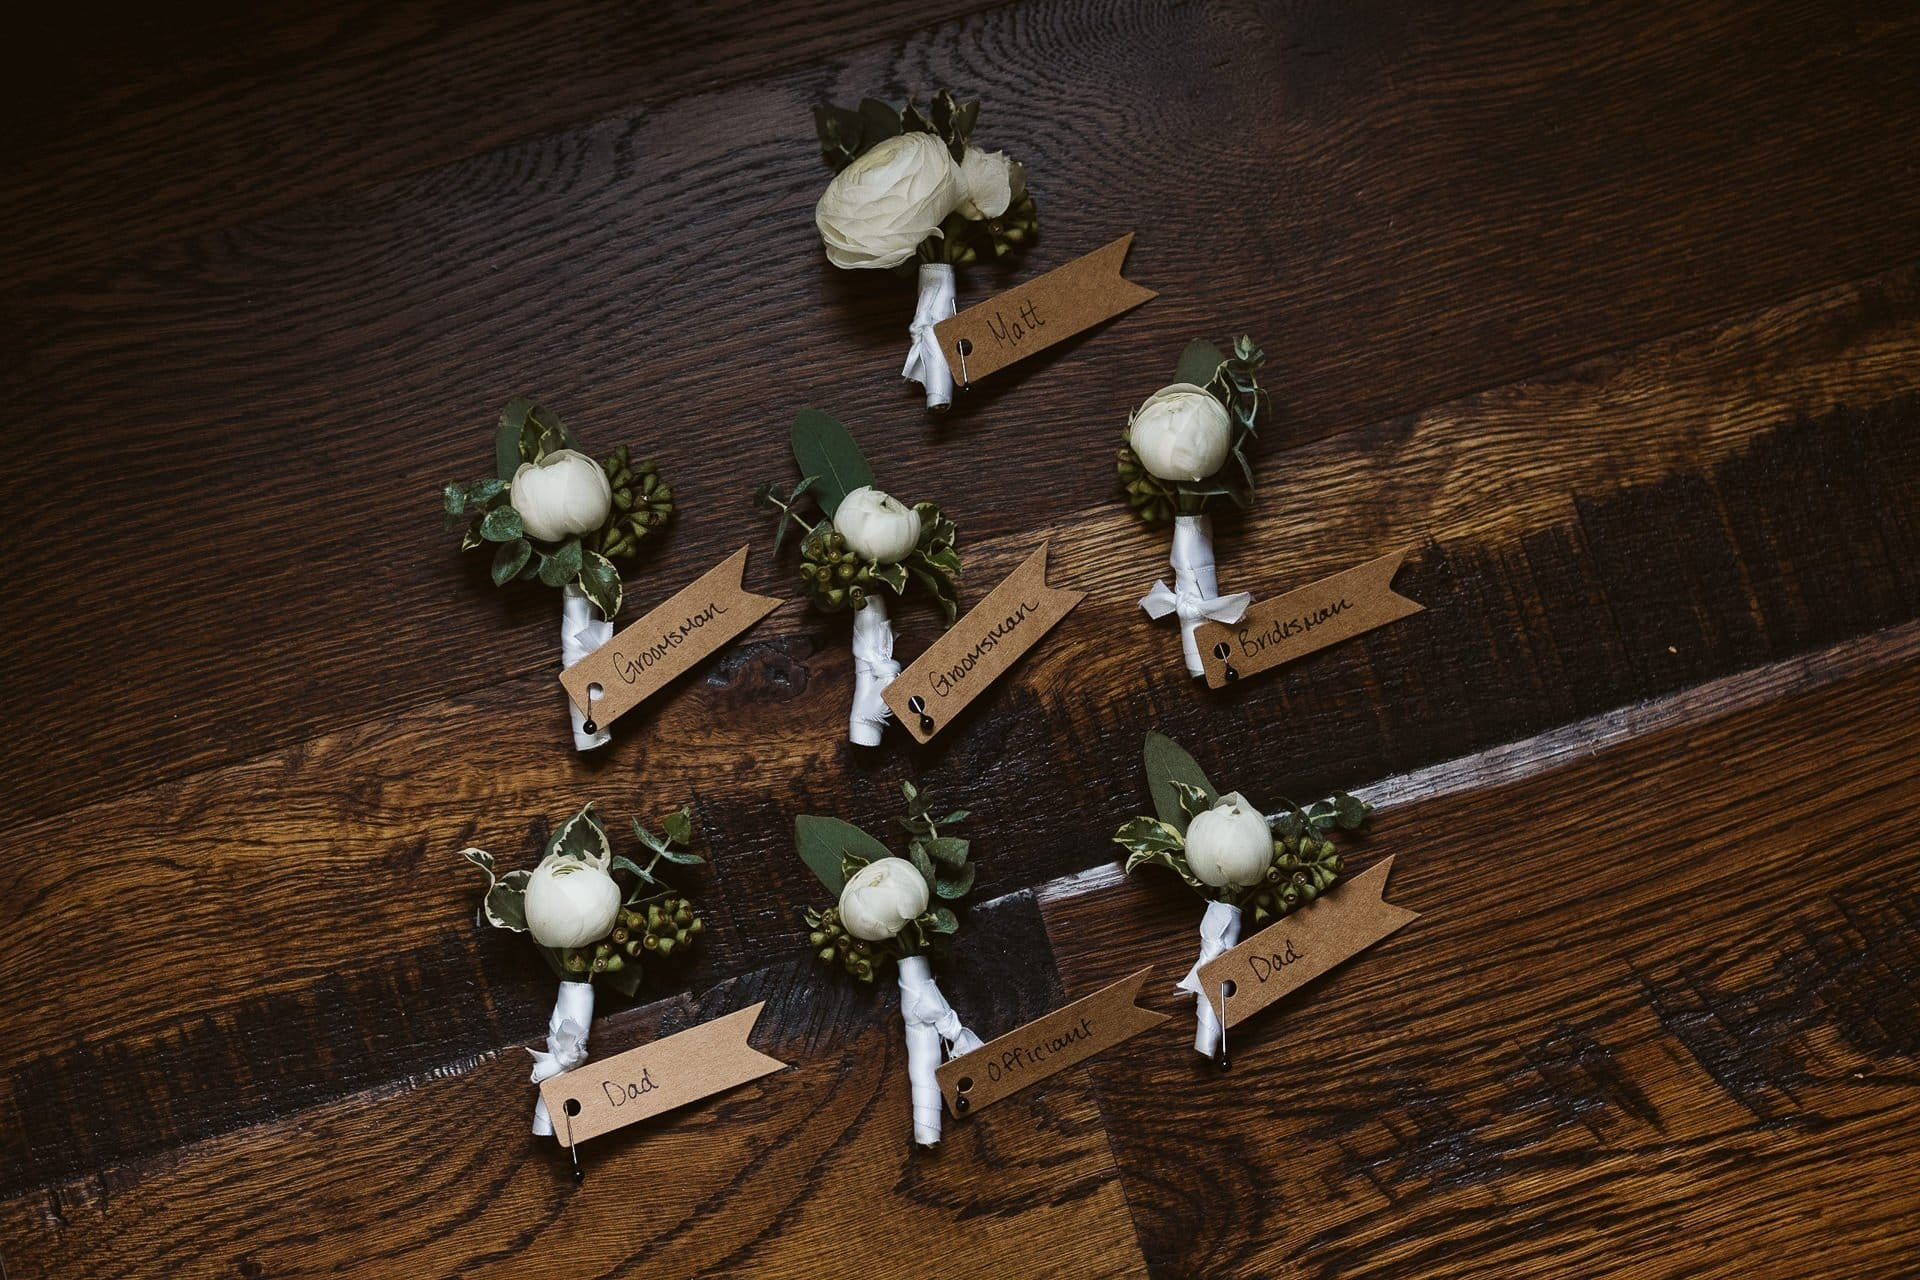 Boutonnieres with magnets by Petal and Bean wedding florist in Breckenridge